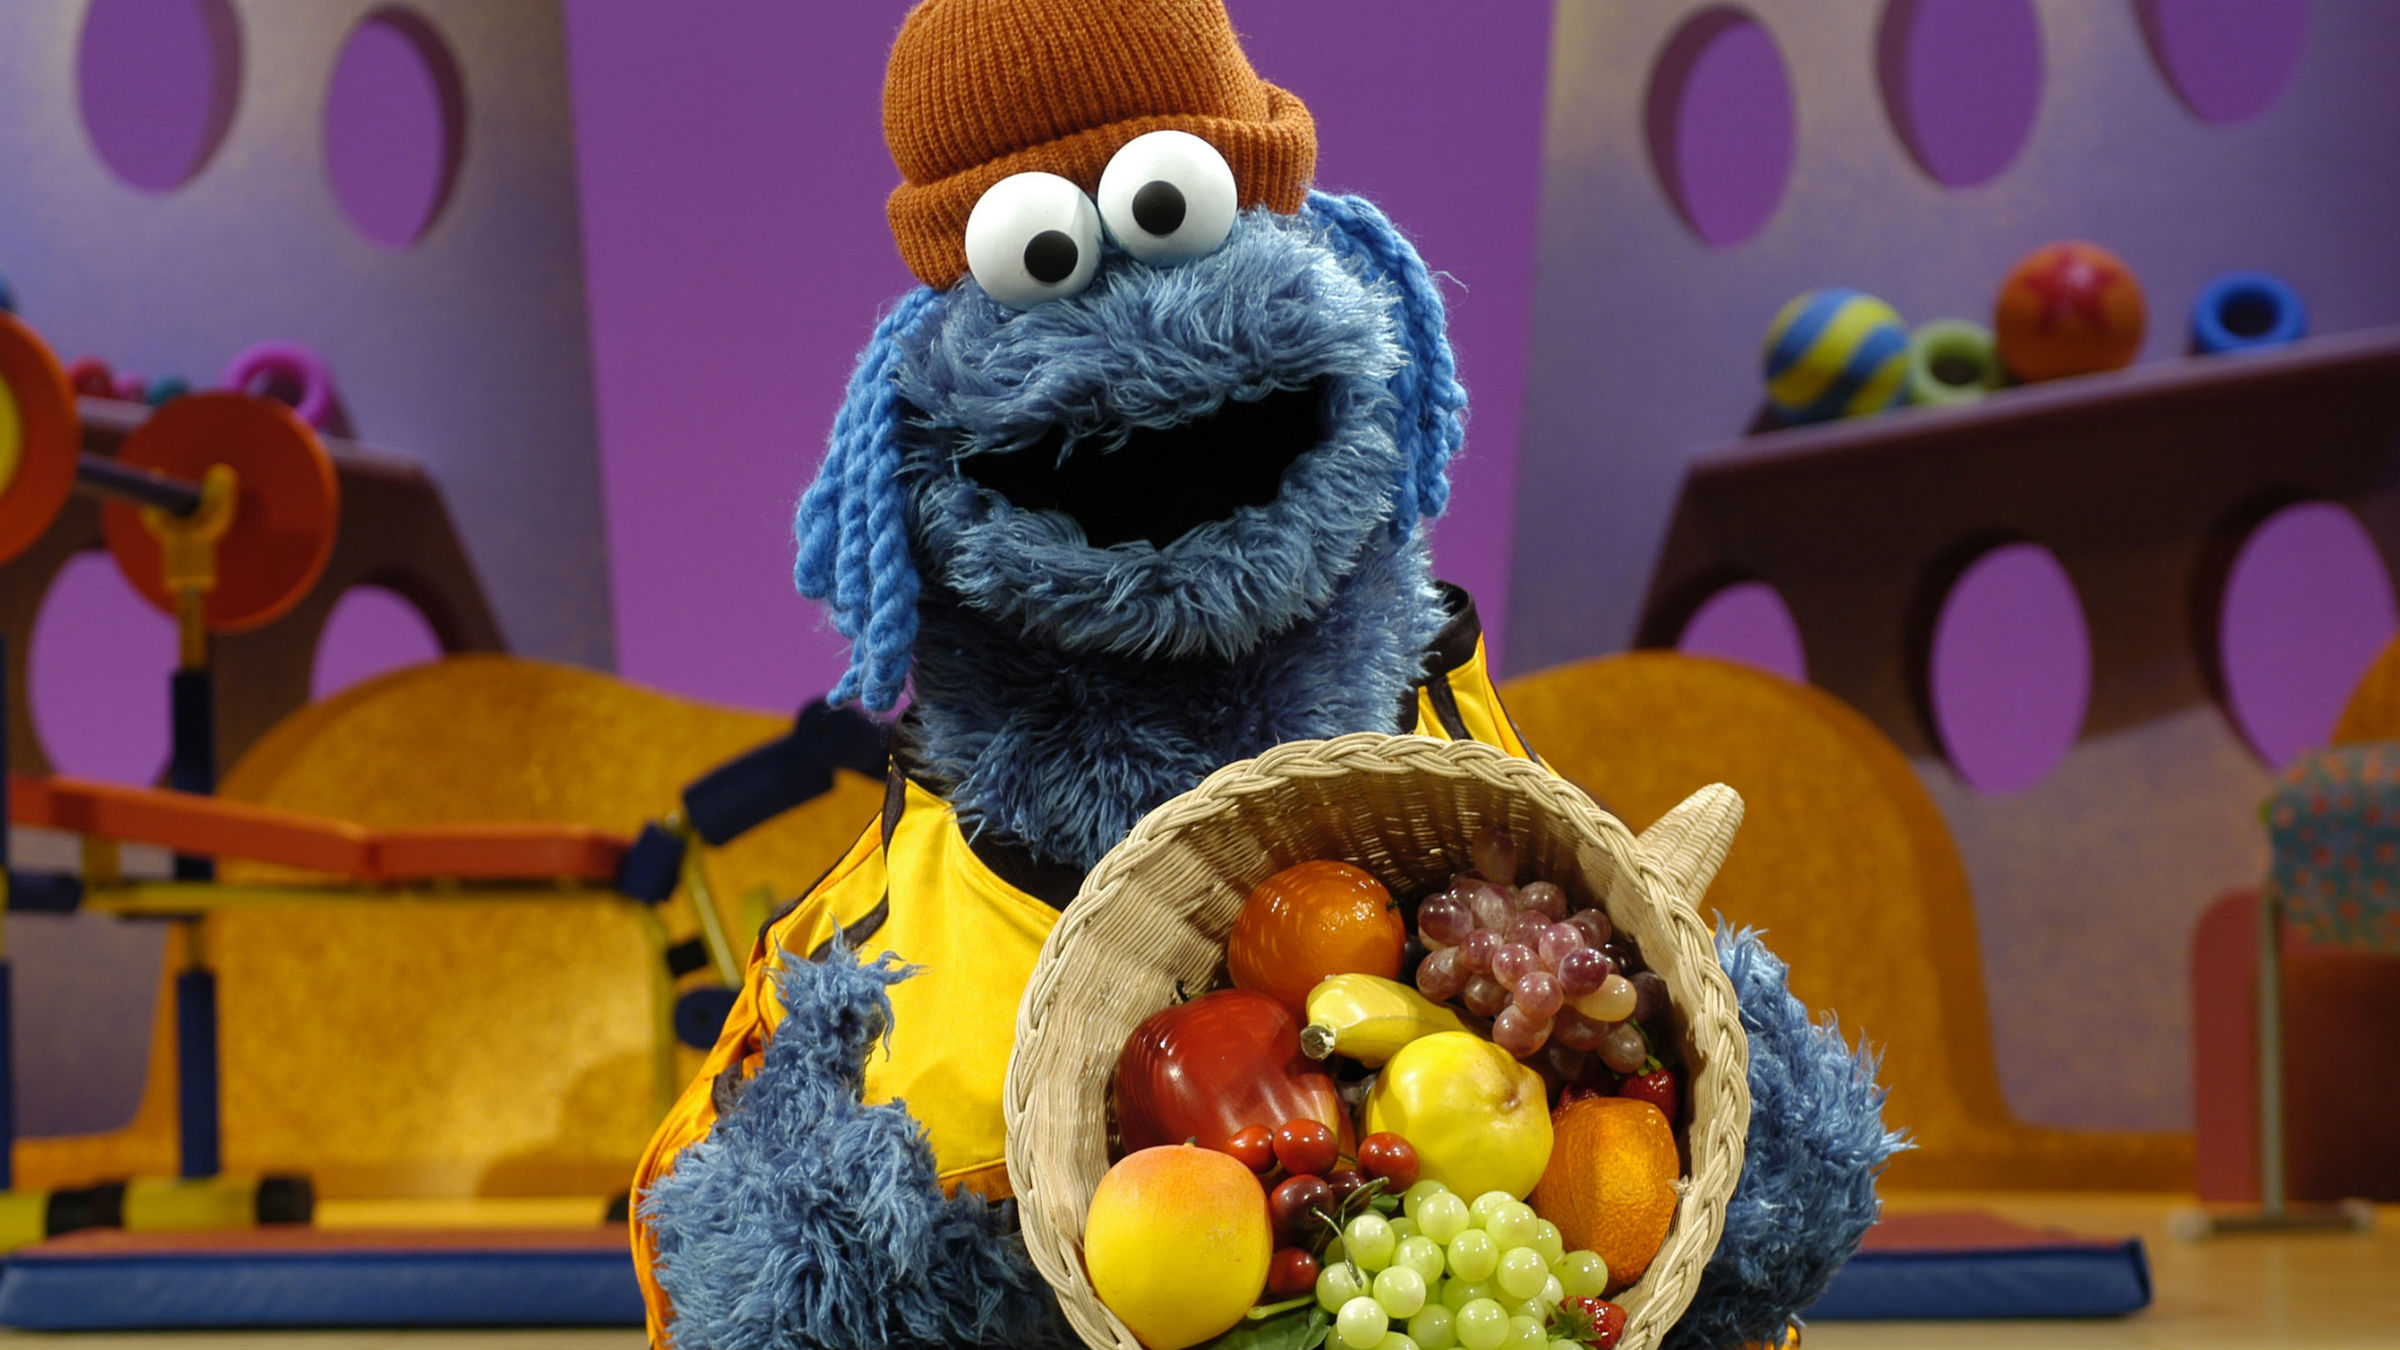 Cookie Monster holding a basket of vegetables and fruit